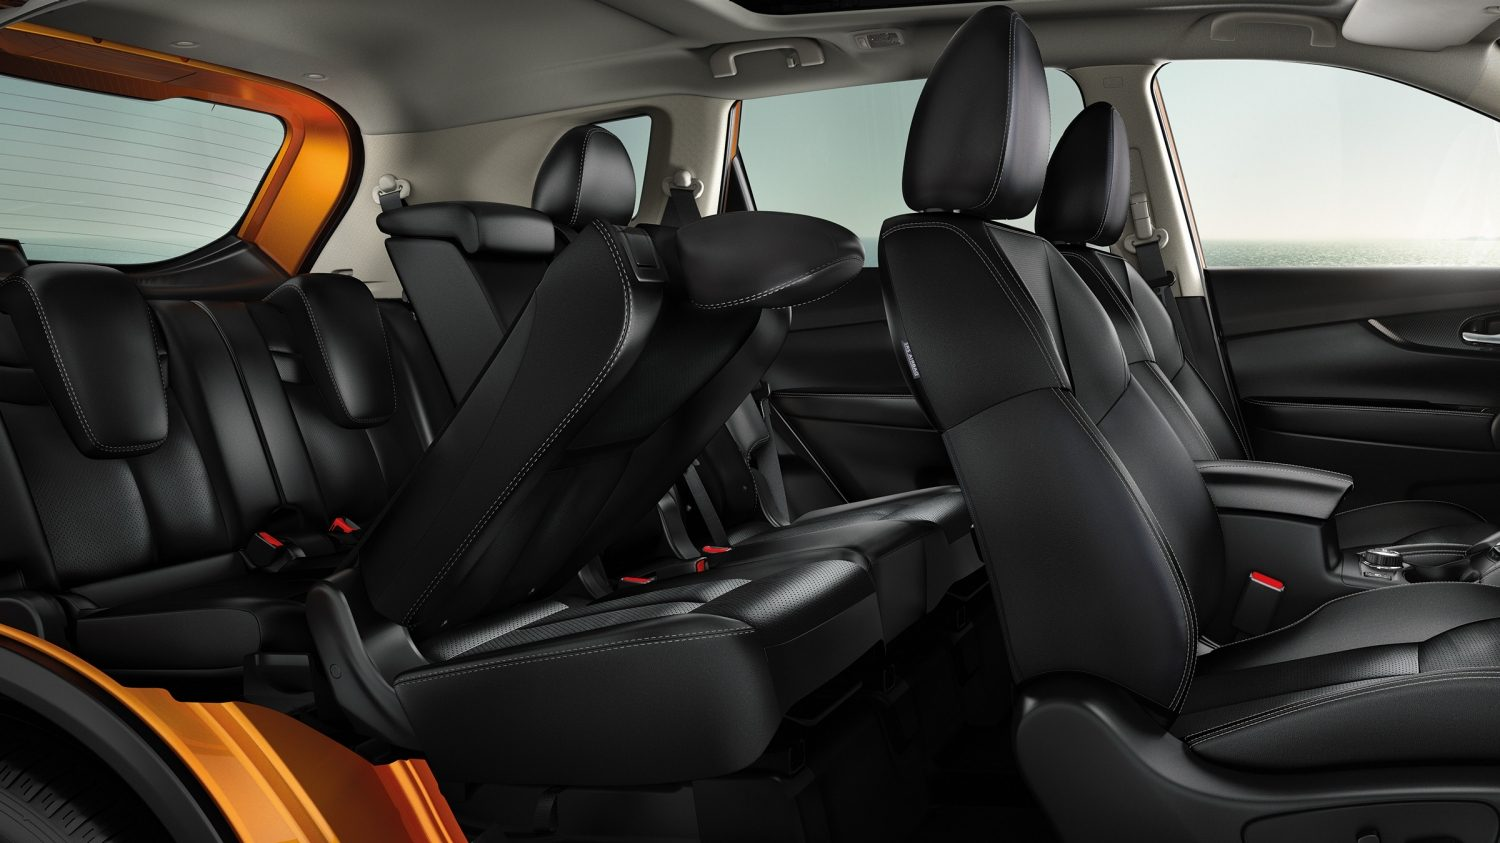 New Nissan X-Trail 2017 EZ flex seating interior profile view